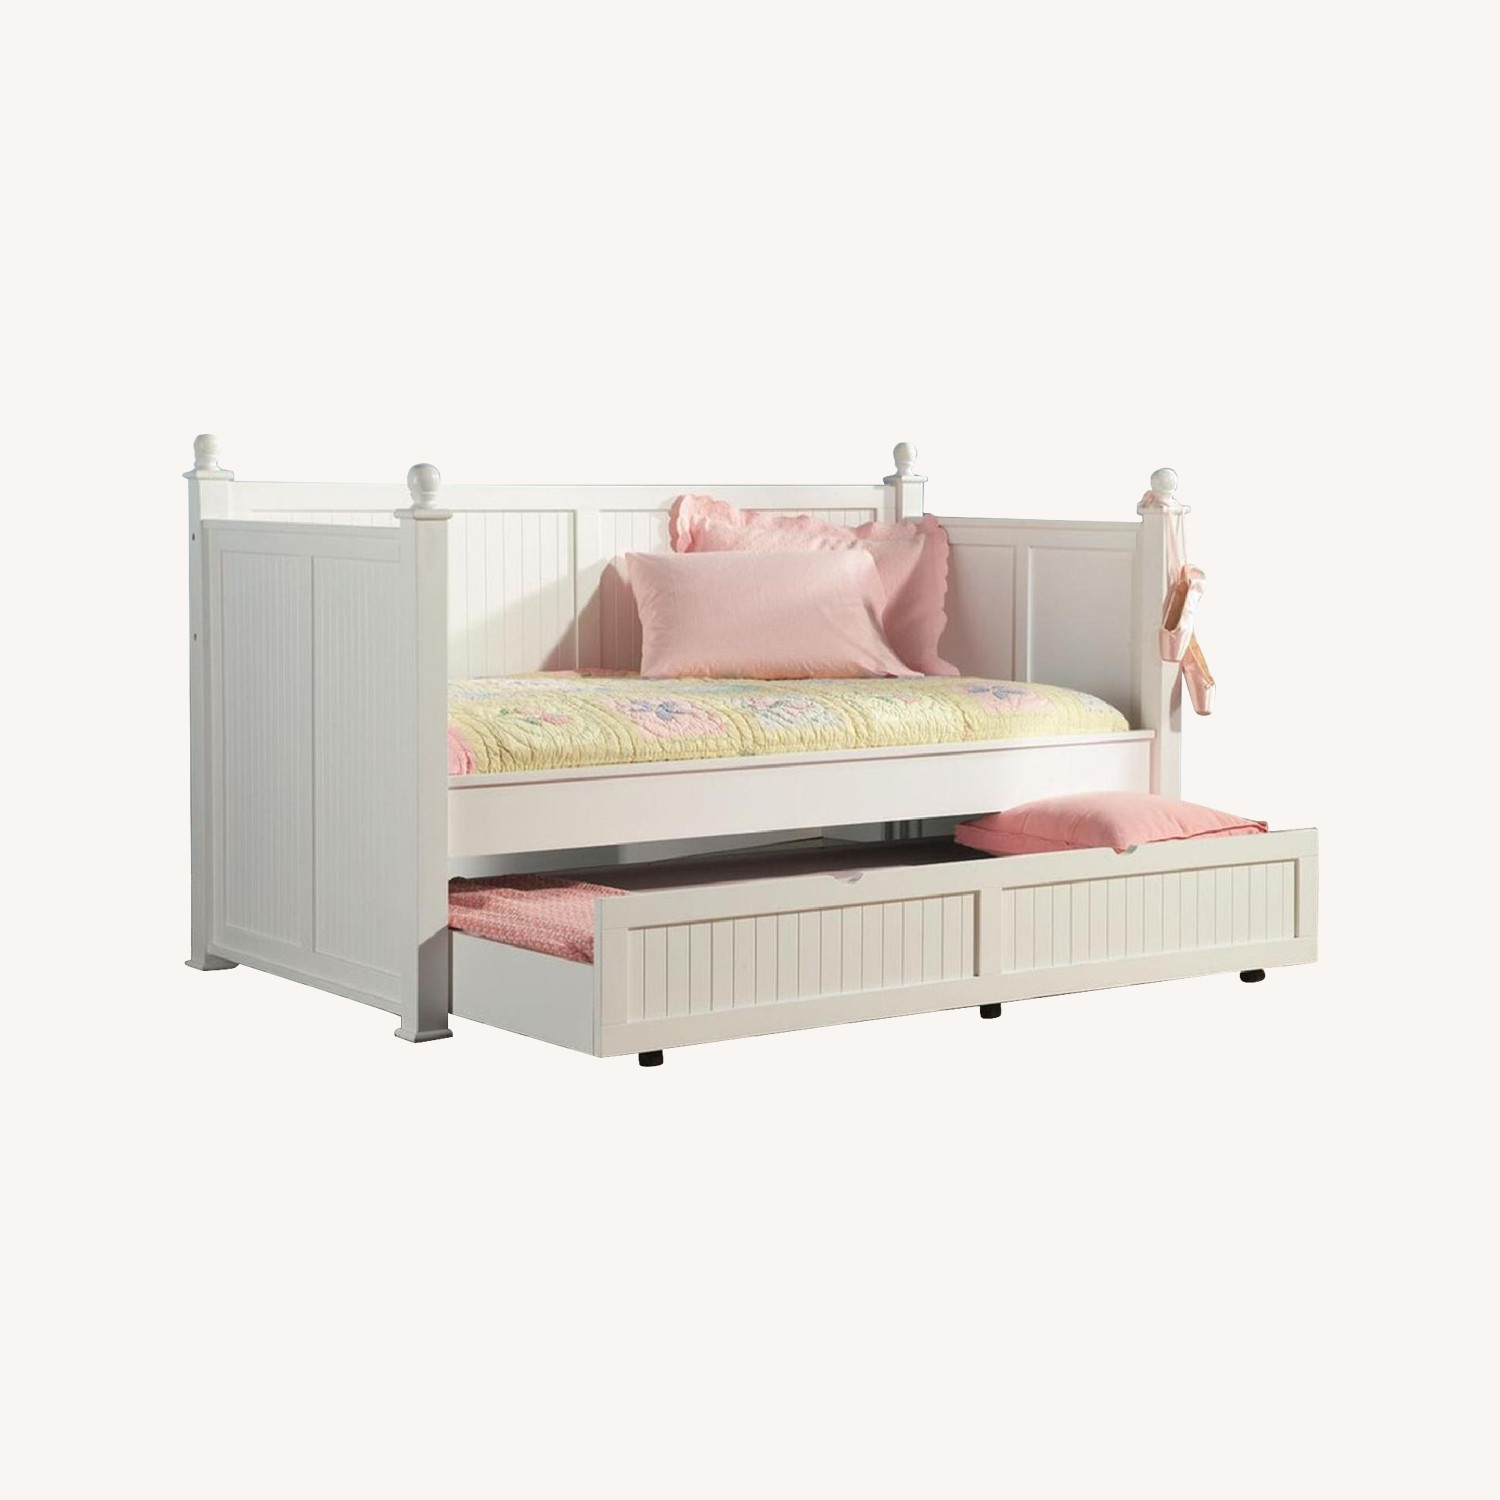 Cottage Style Daybed in White Finish w/ Pull-Out Trundle